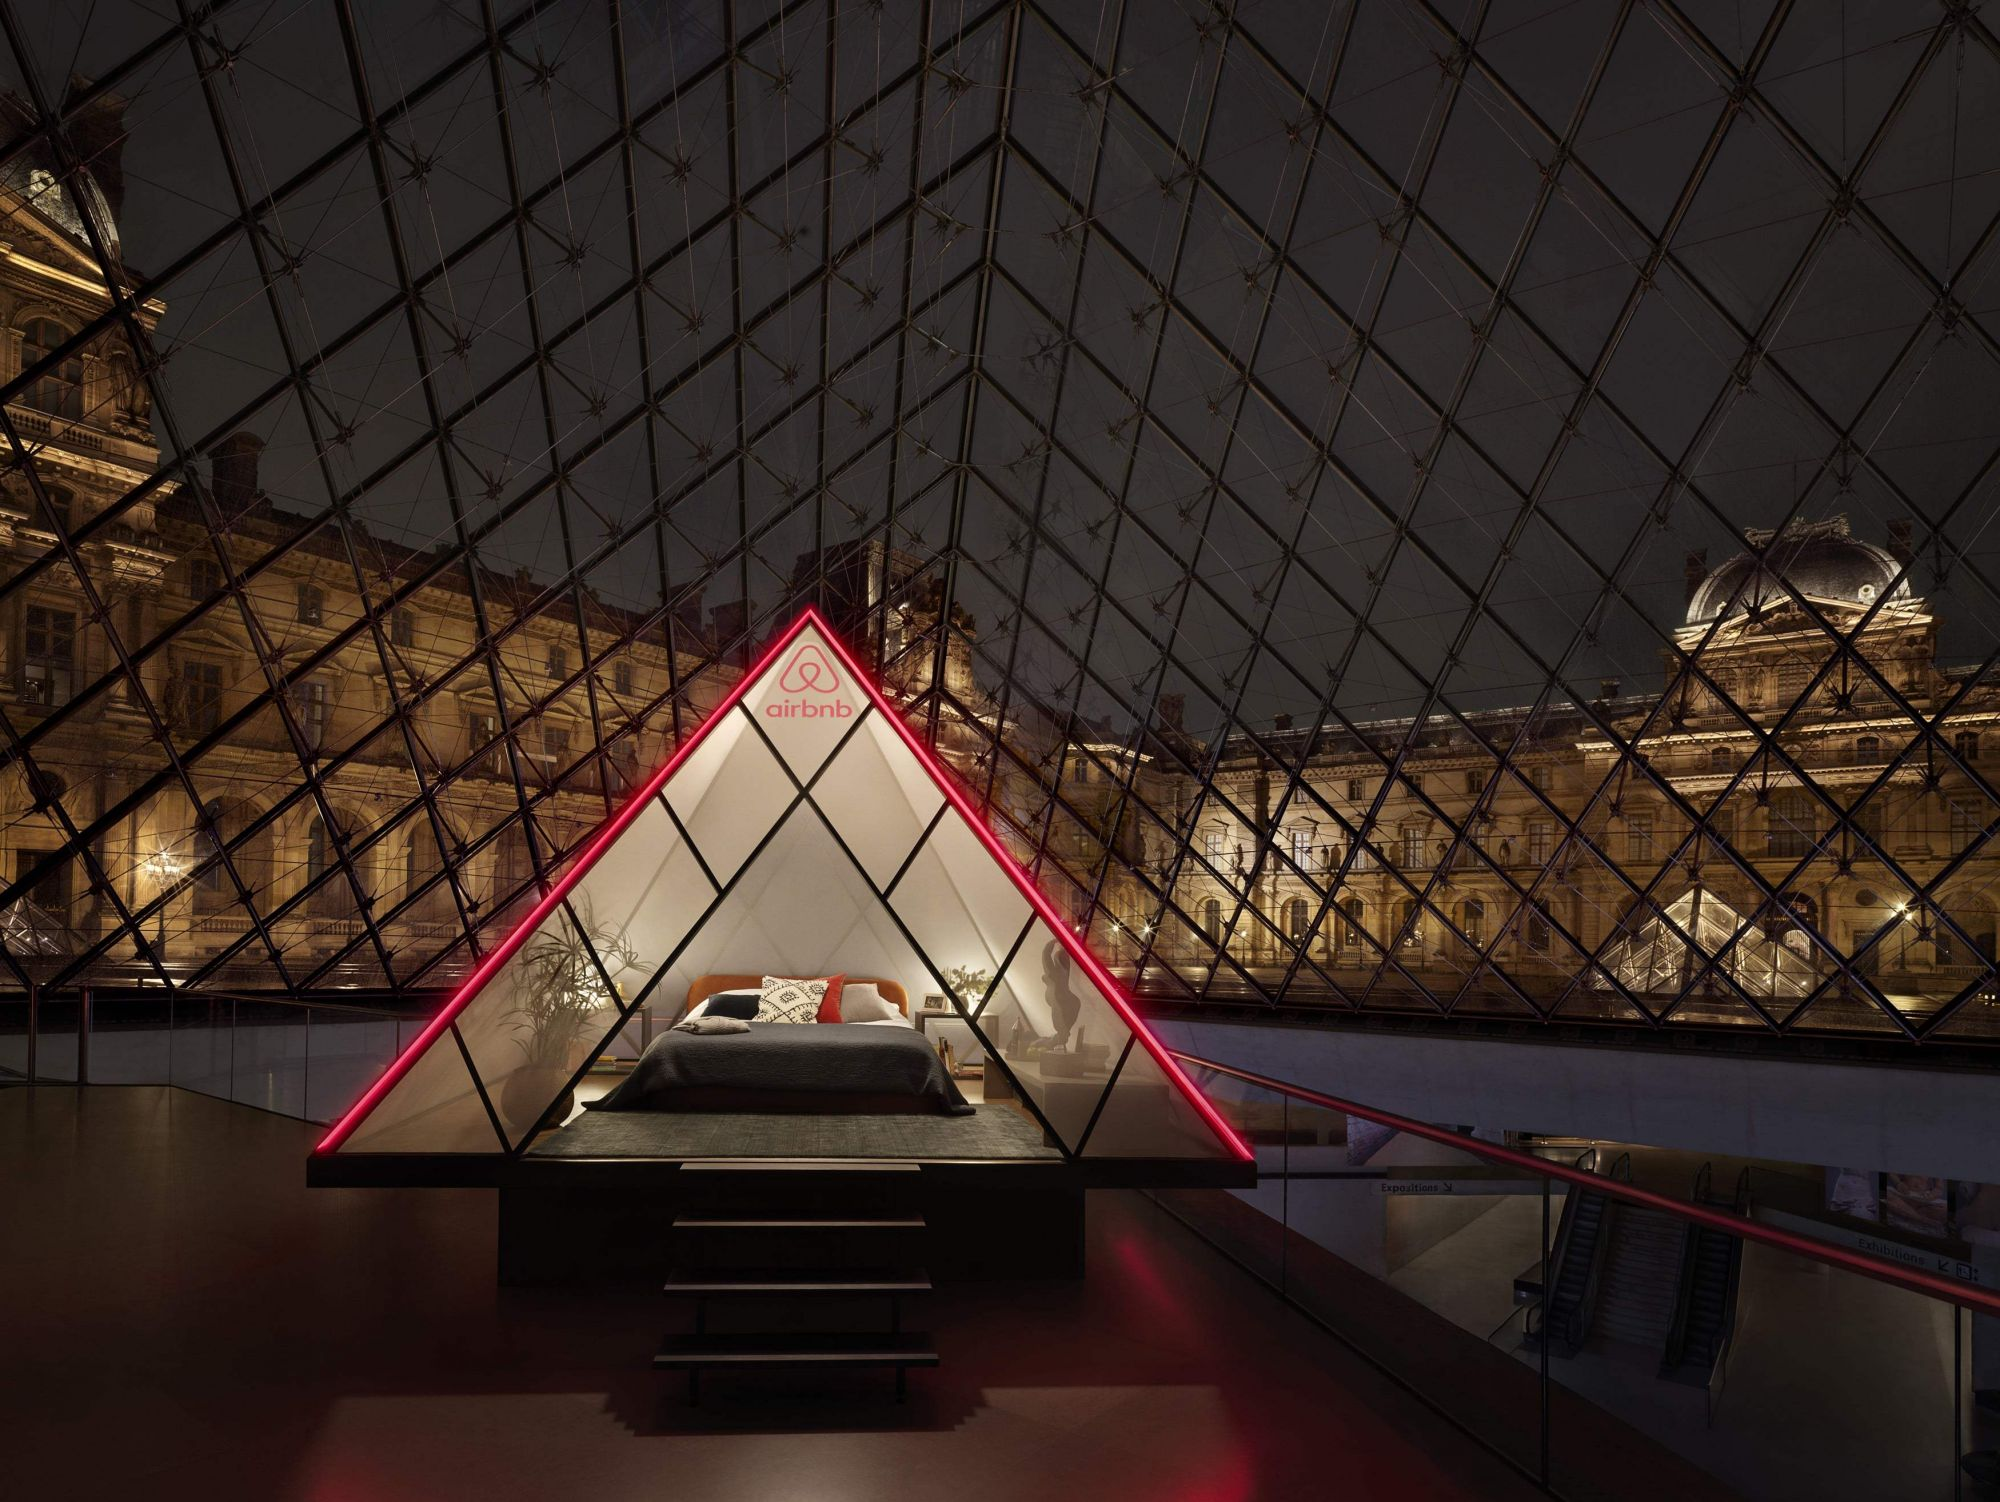 With Airbnb, the Louvre is setting up a bedroom beneath its pyramid on April 30